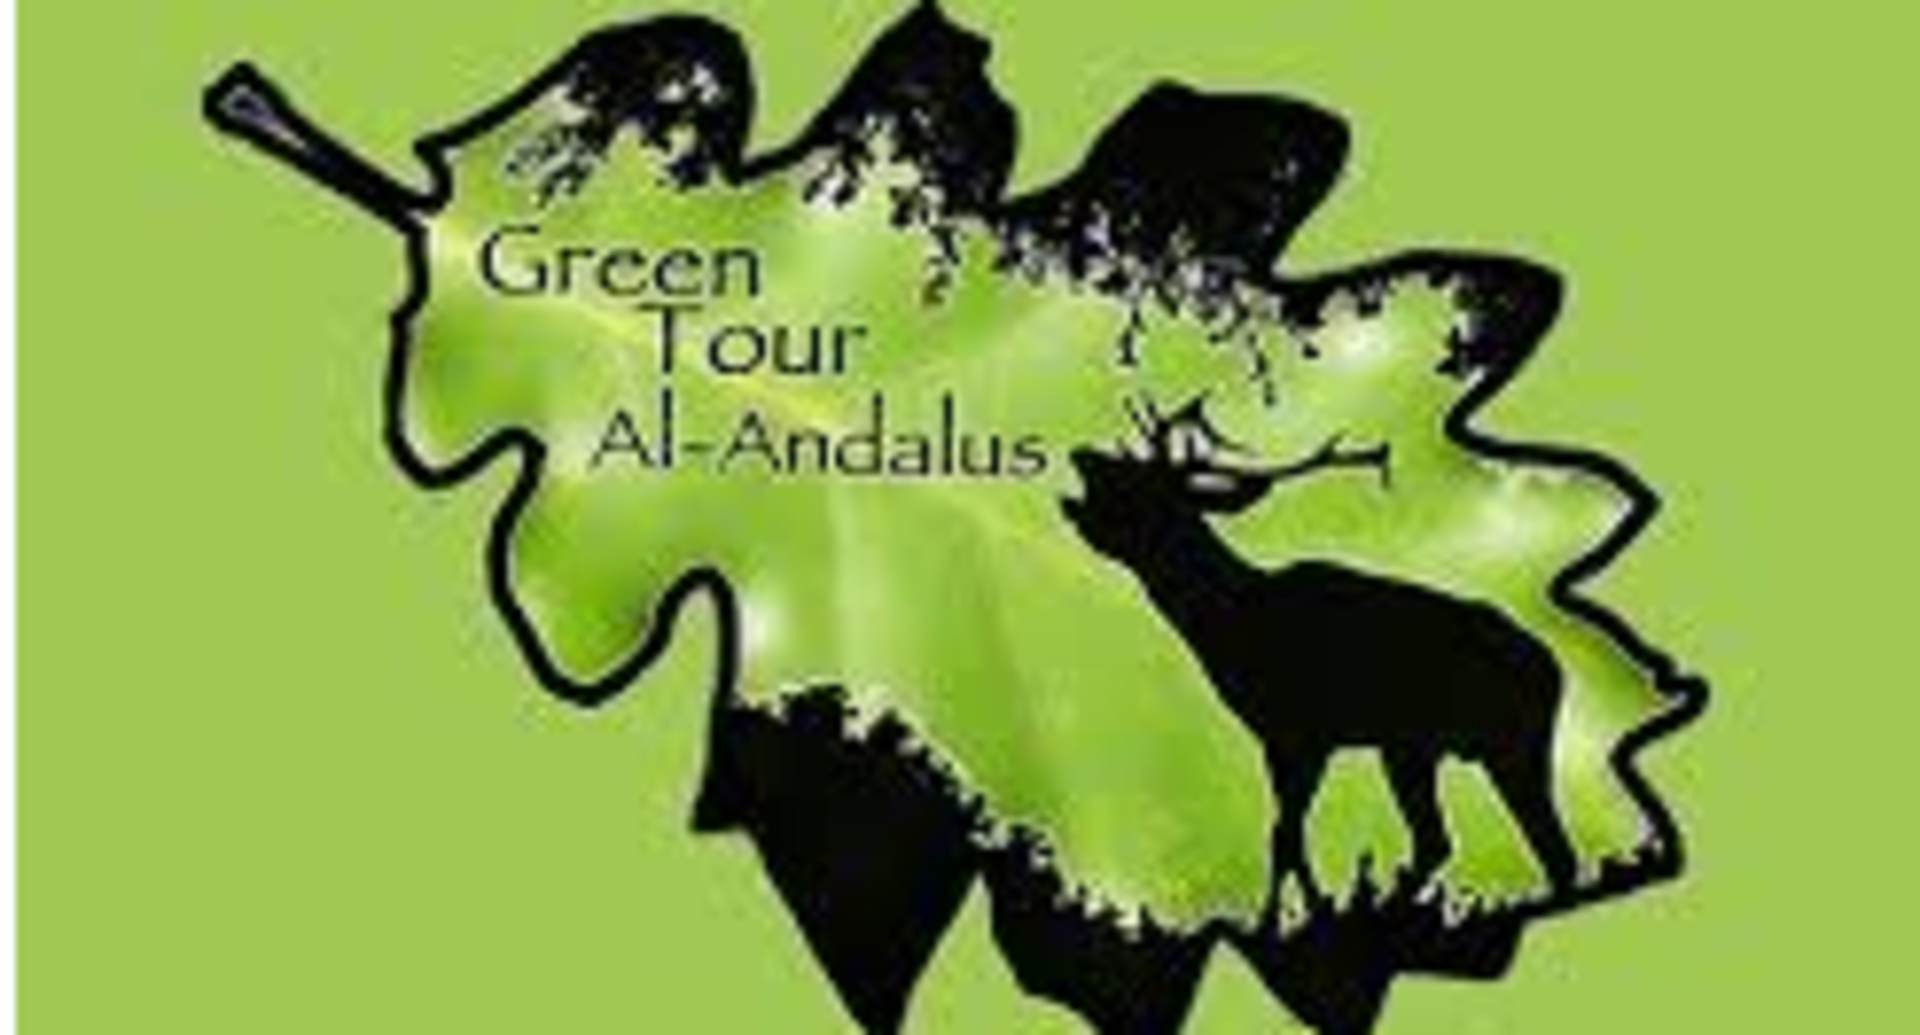 Green tour Al-Andalus